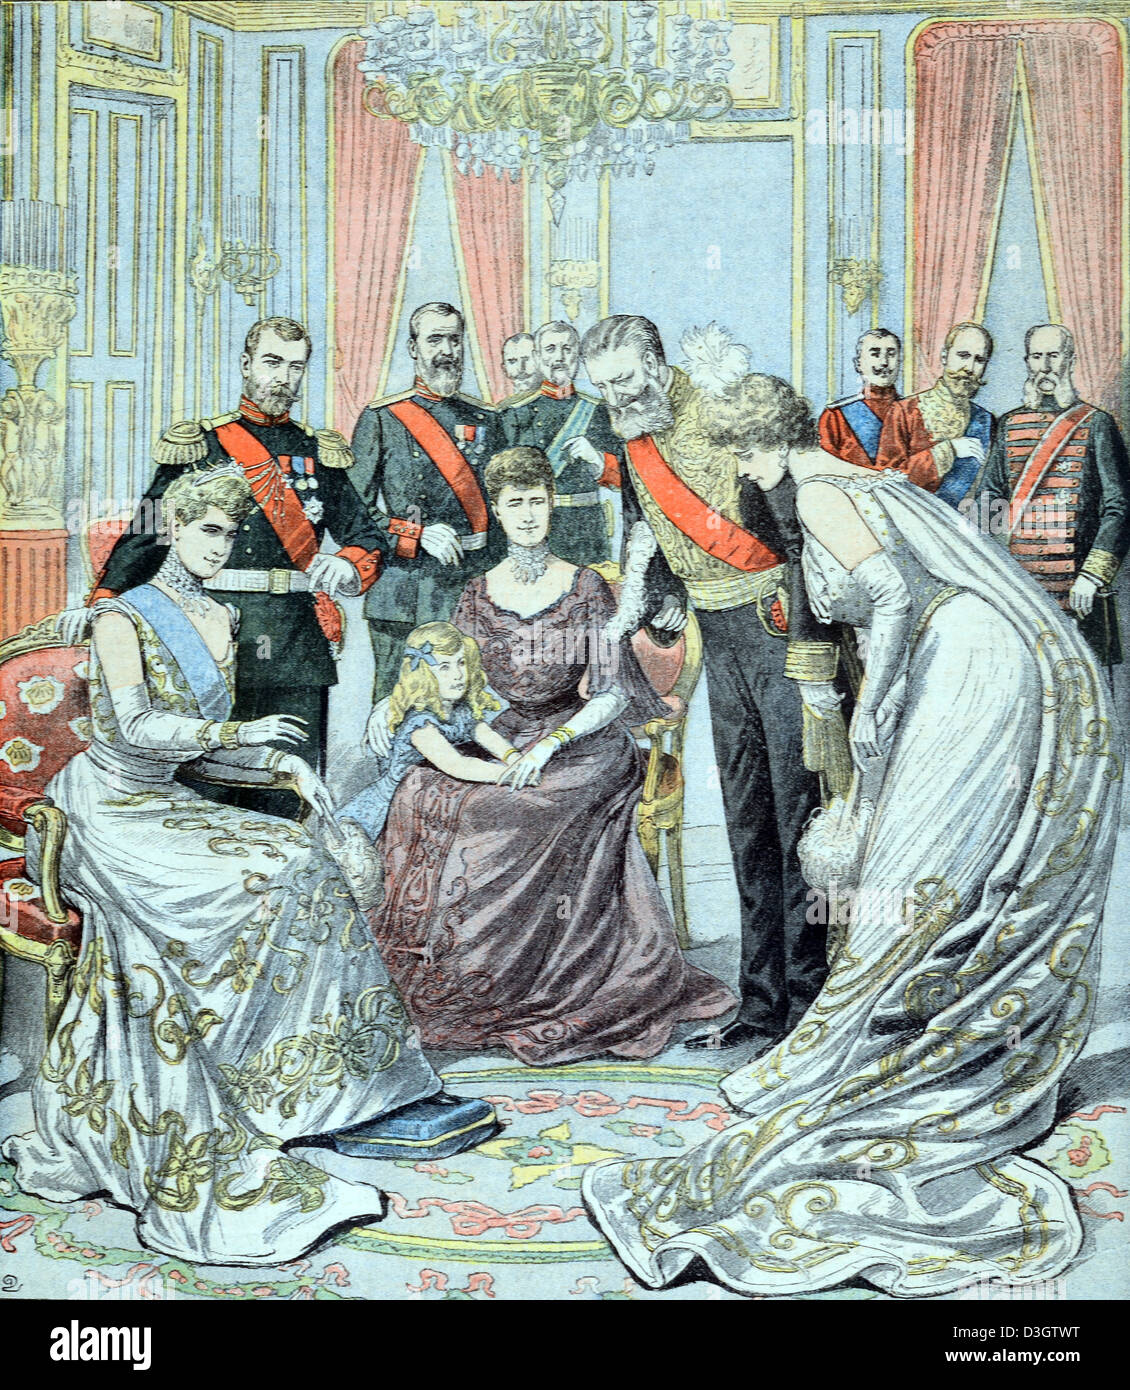 Reception of Russian Czar or Emperor Nicholas II of Russia and the French Ambassador in Saint Petersburg Russia (February 1903). Vintage or Old Illustration or Engraving 1903 Stock Photo